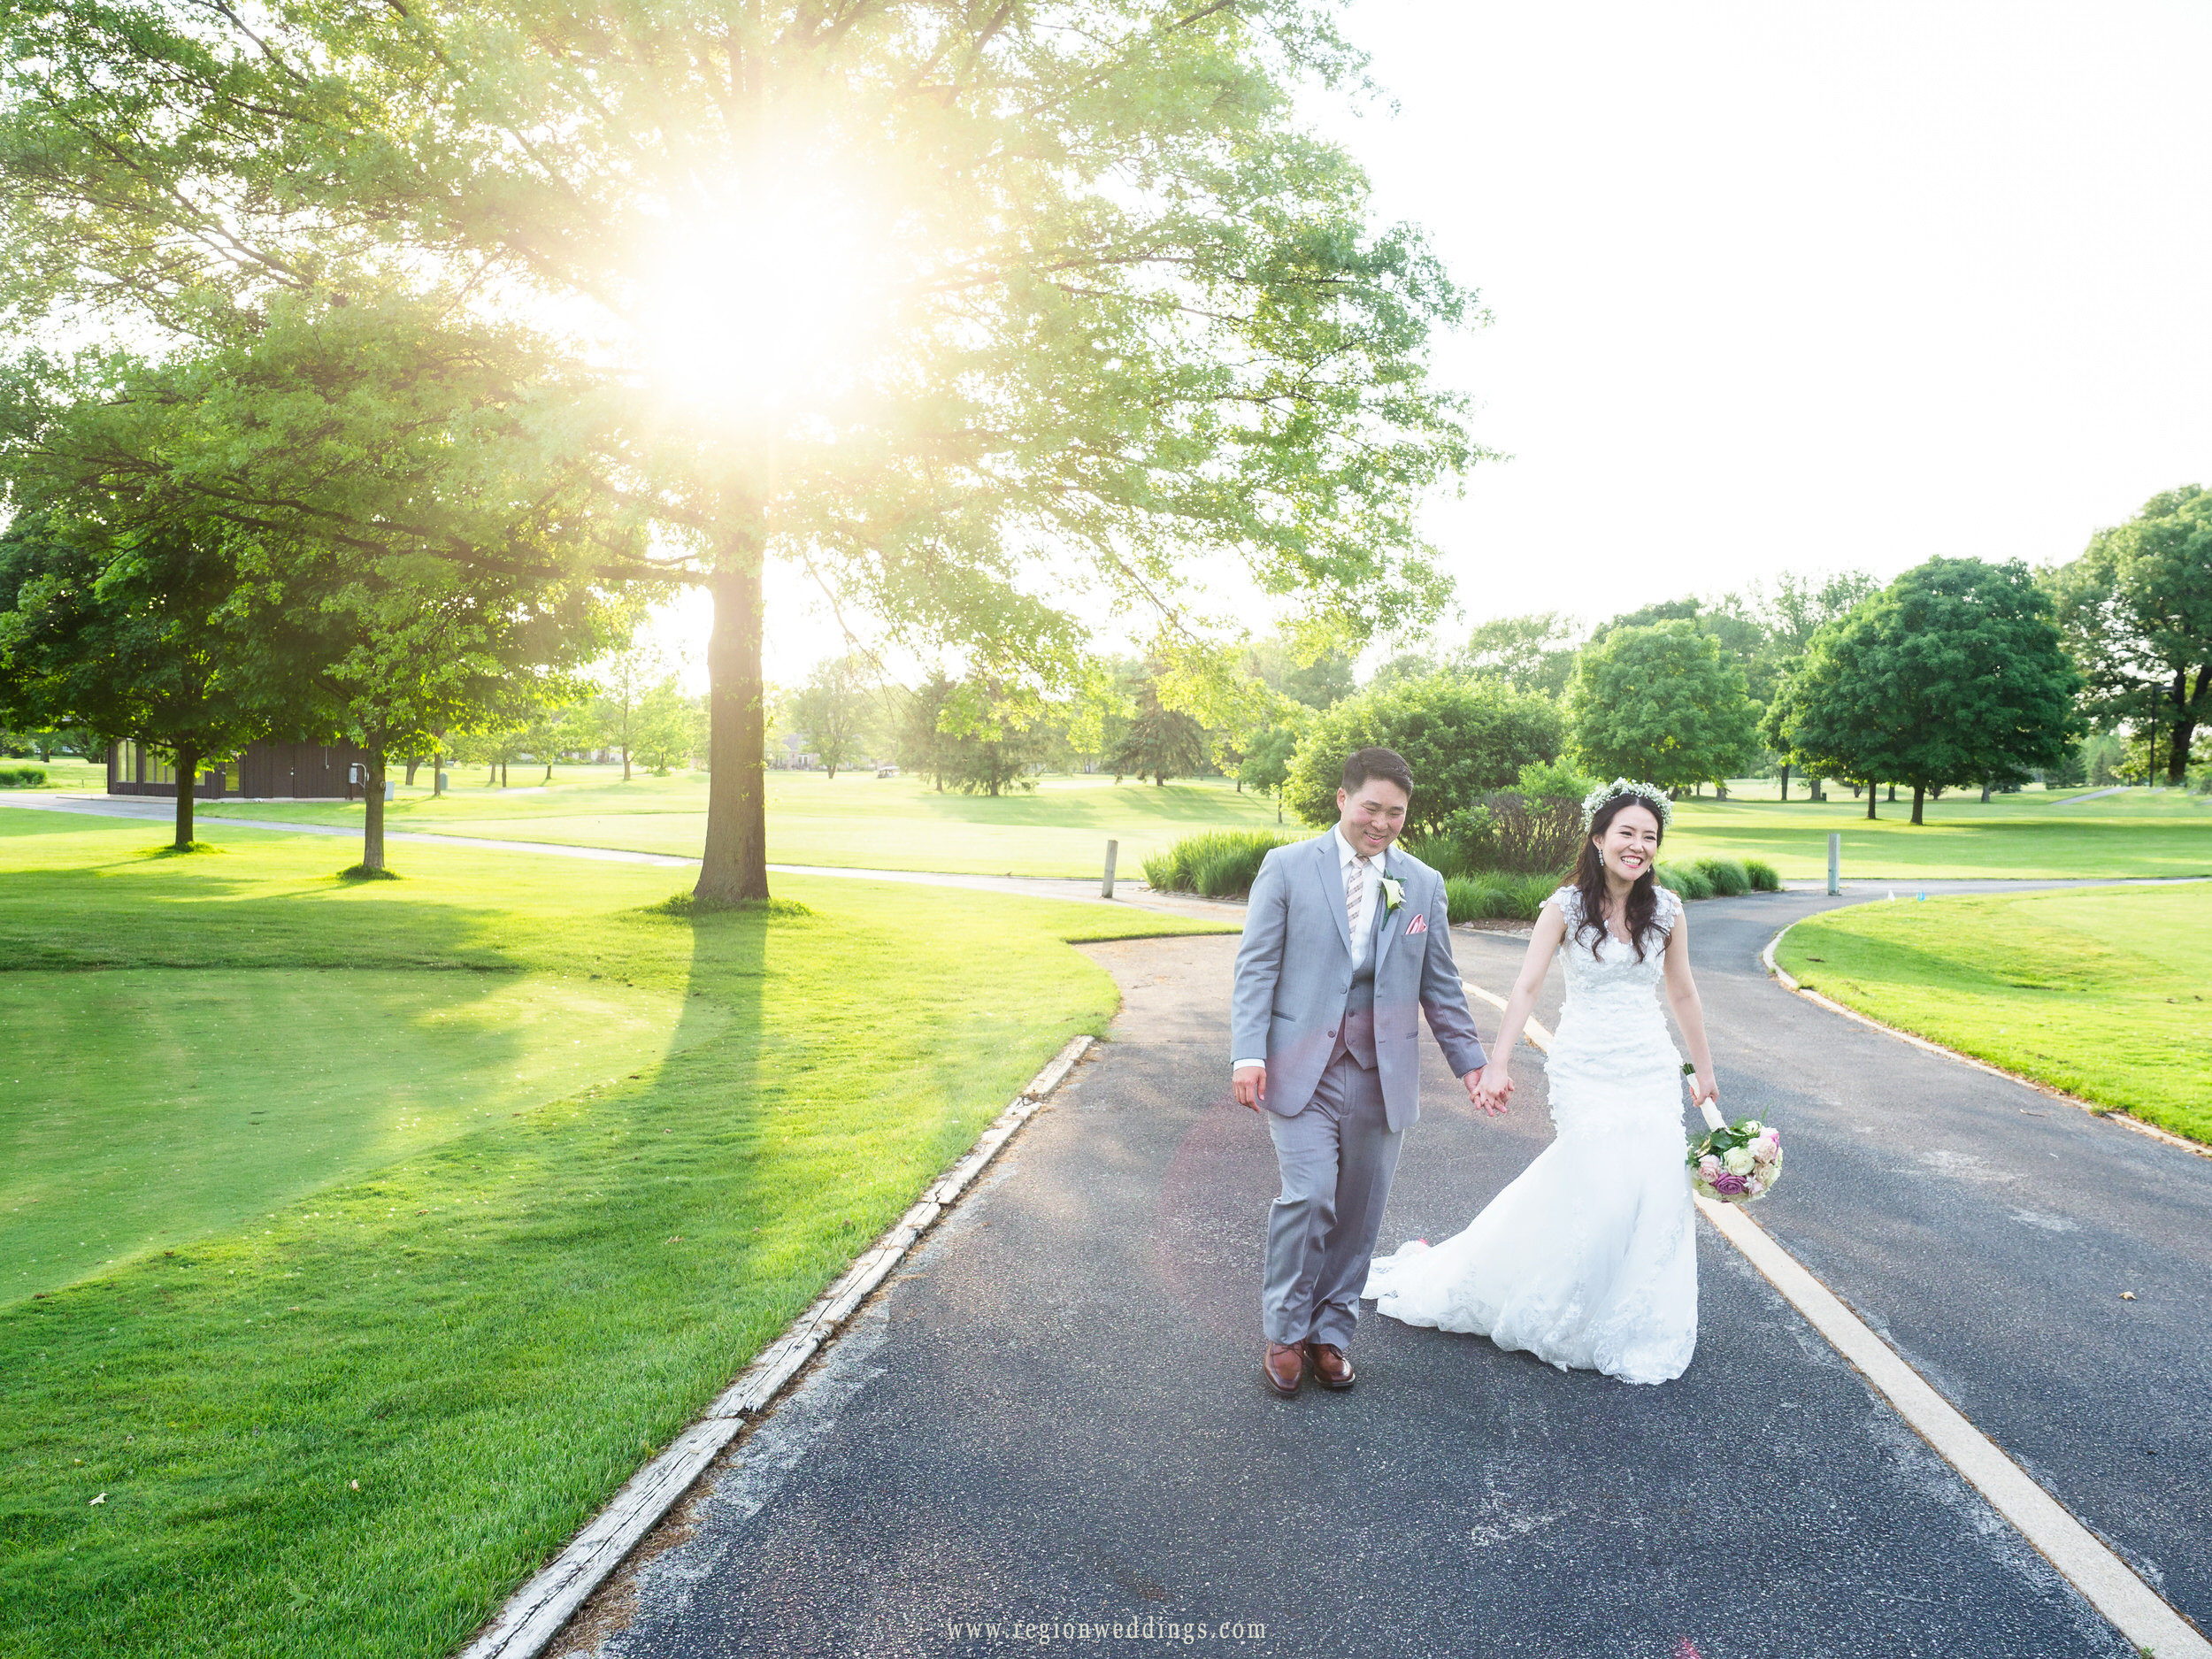 Bride and groom take a stroll in the golden hour sun.